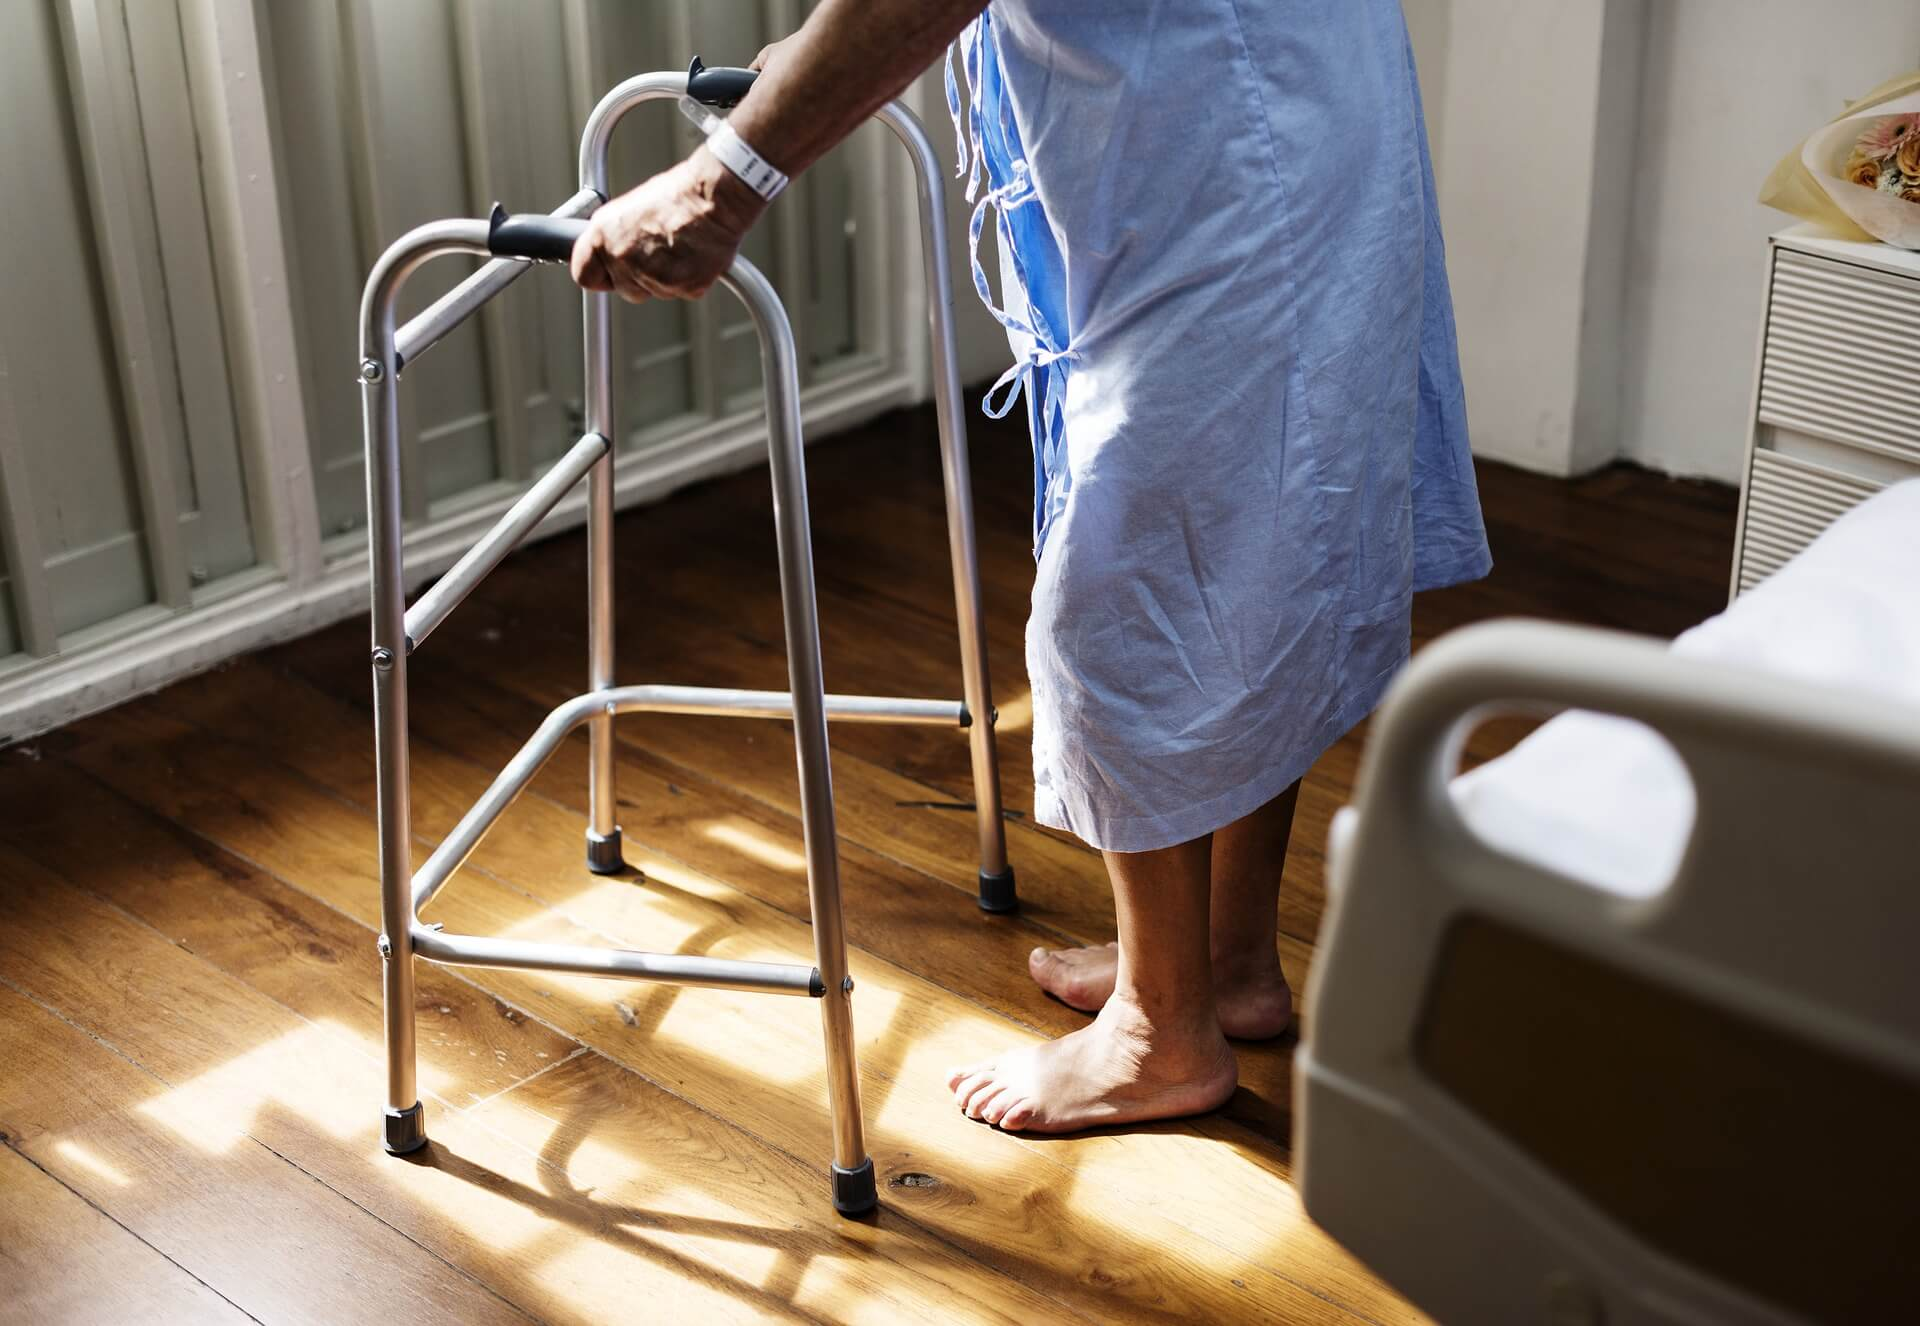 An elderly person receiving healthcare